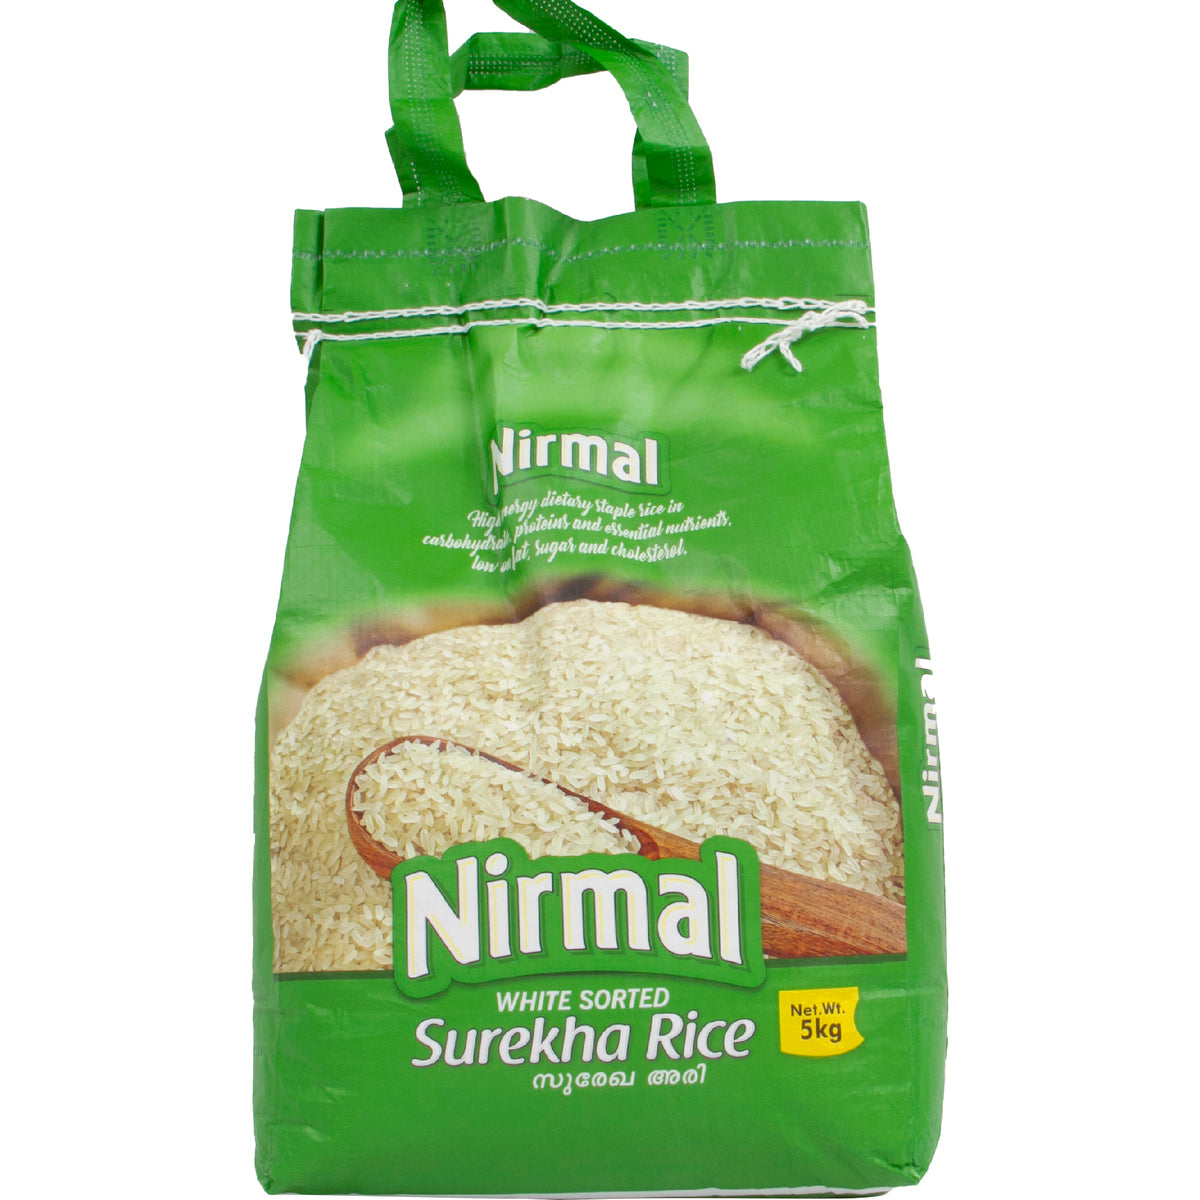 NIRMAL SUREKHA RICE 5KG BAG